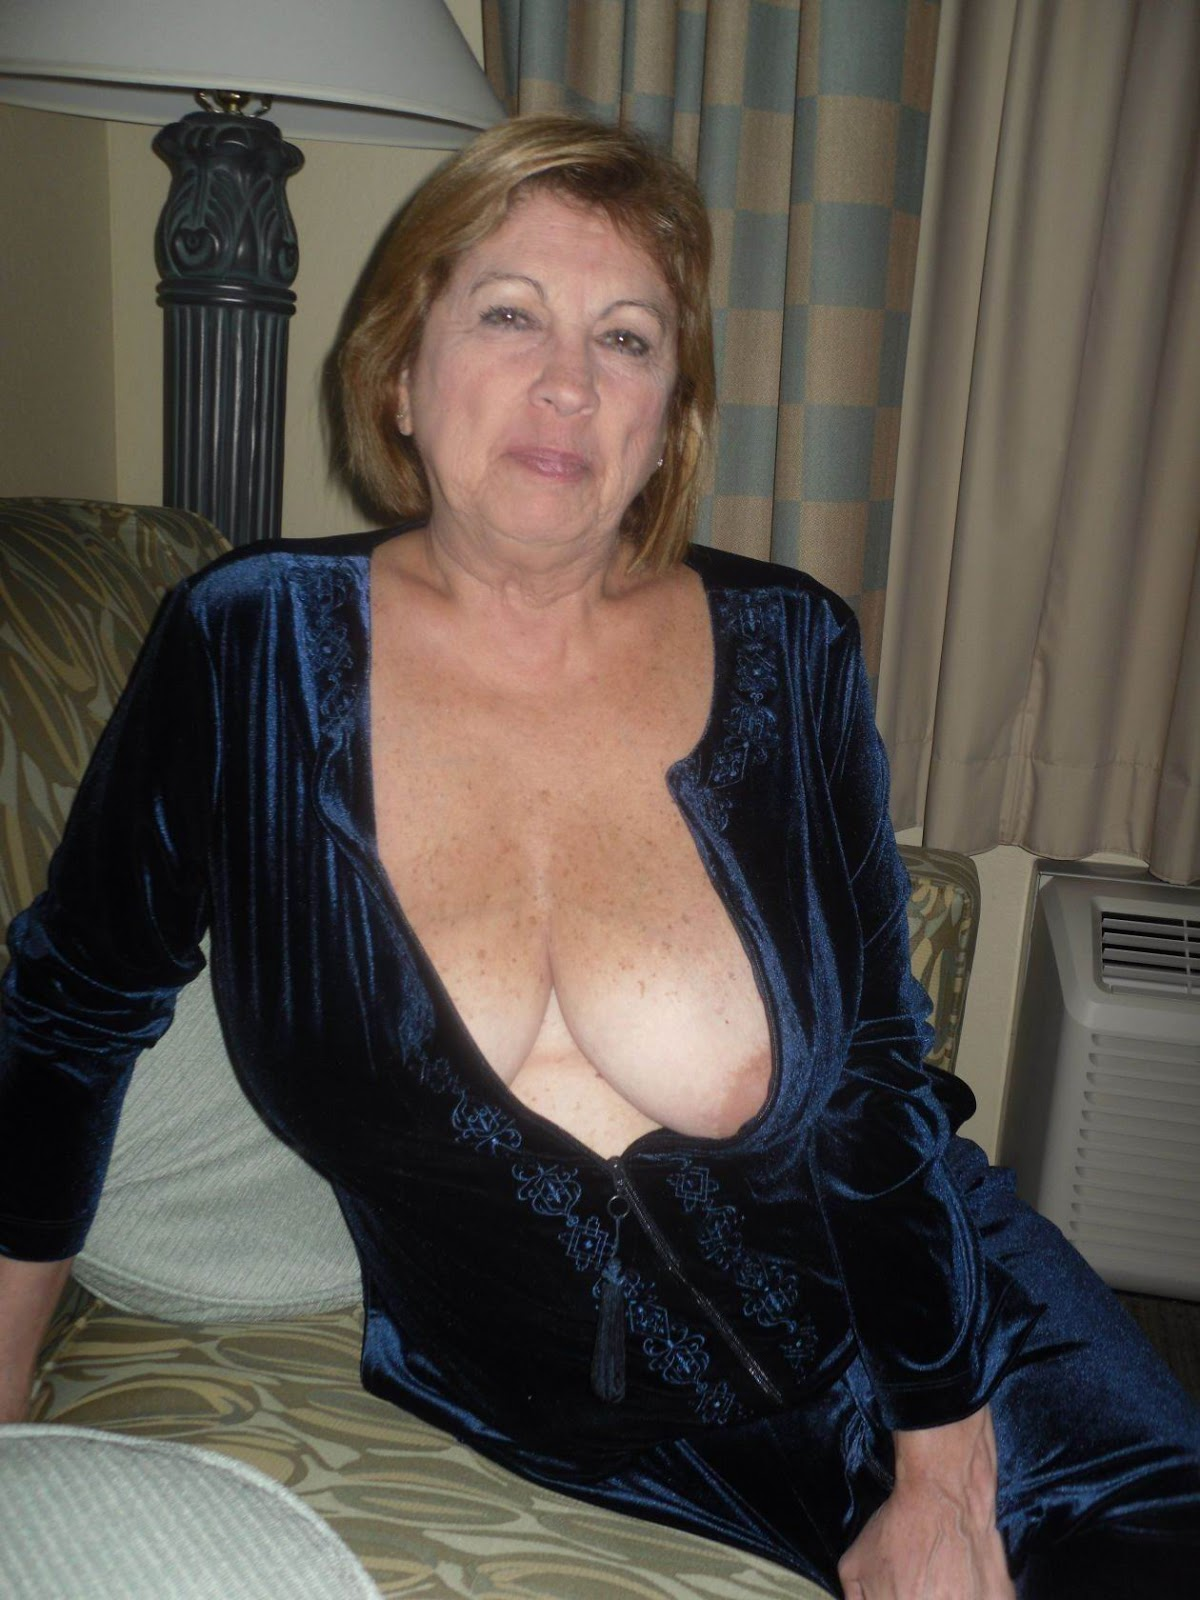 Naked Older Women With Big Boobs